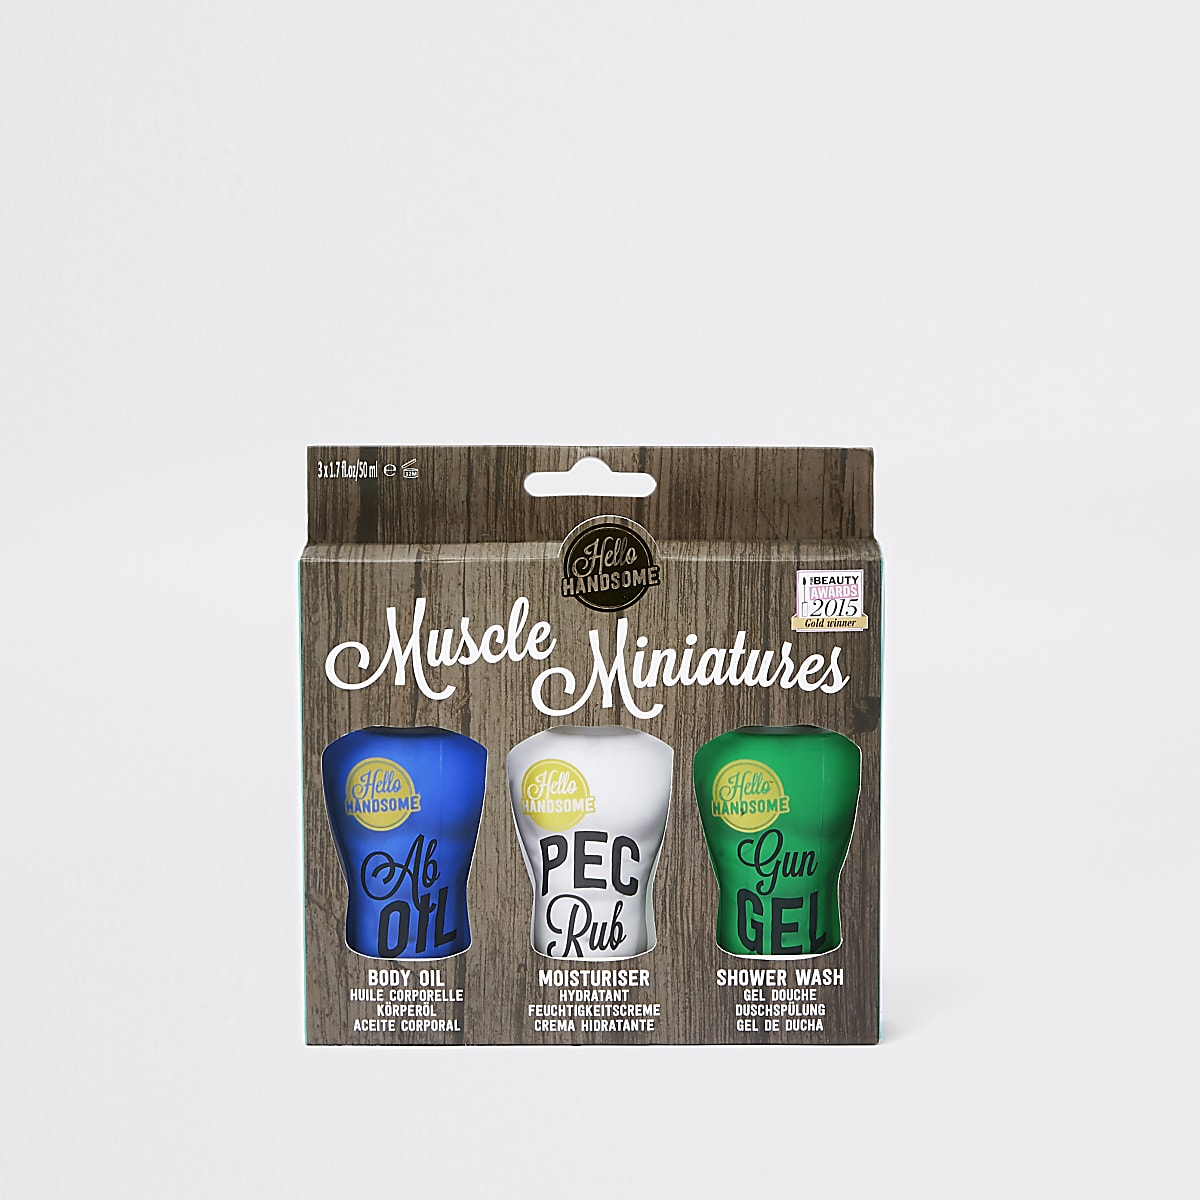 White Muscle Miniatures shower set